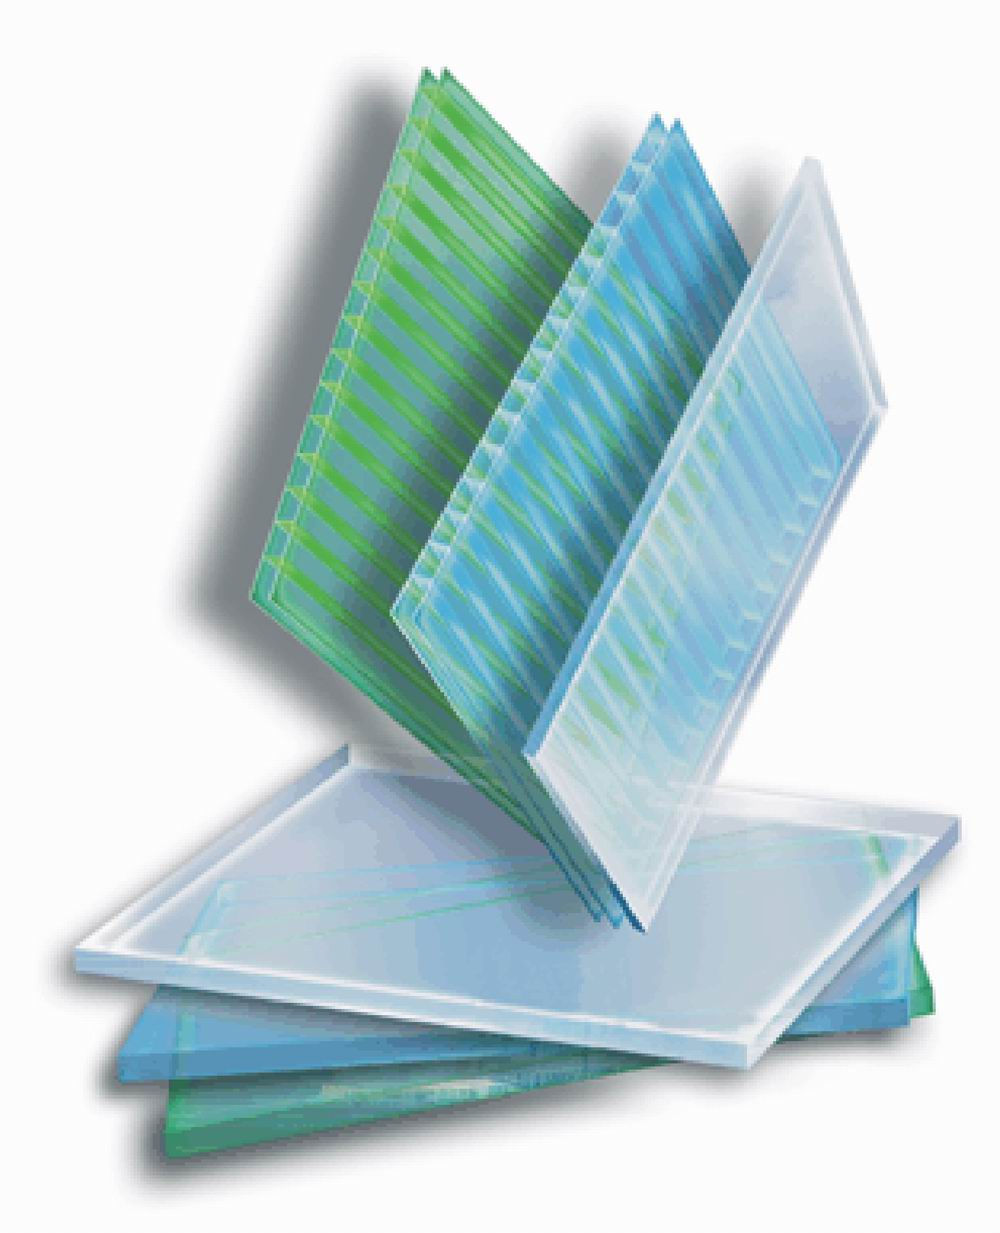 global polycarbonate market to grow at Global polycarbonate films market with forecasts to 2022 - growing demand for recyclable plastics dublin, jan 12 global polycarbonate films market with forecasts to 2022 - growing demand for recyclable plastics driving the market news provided by research and markets jan.